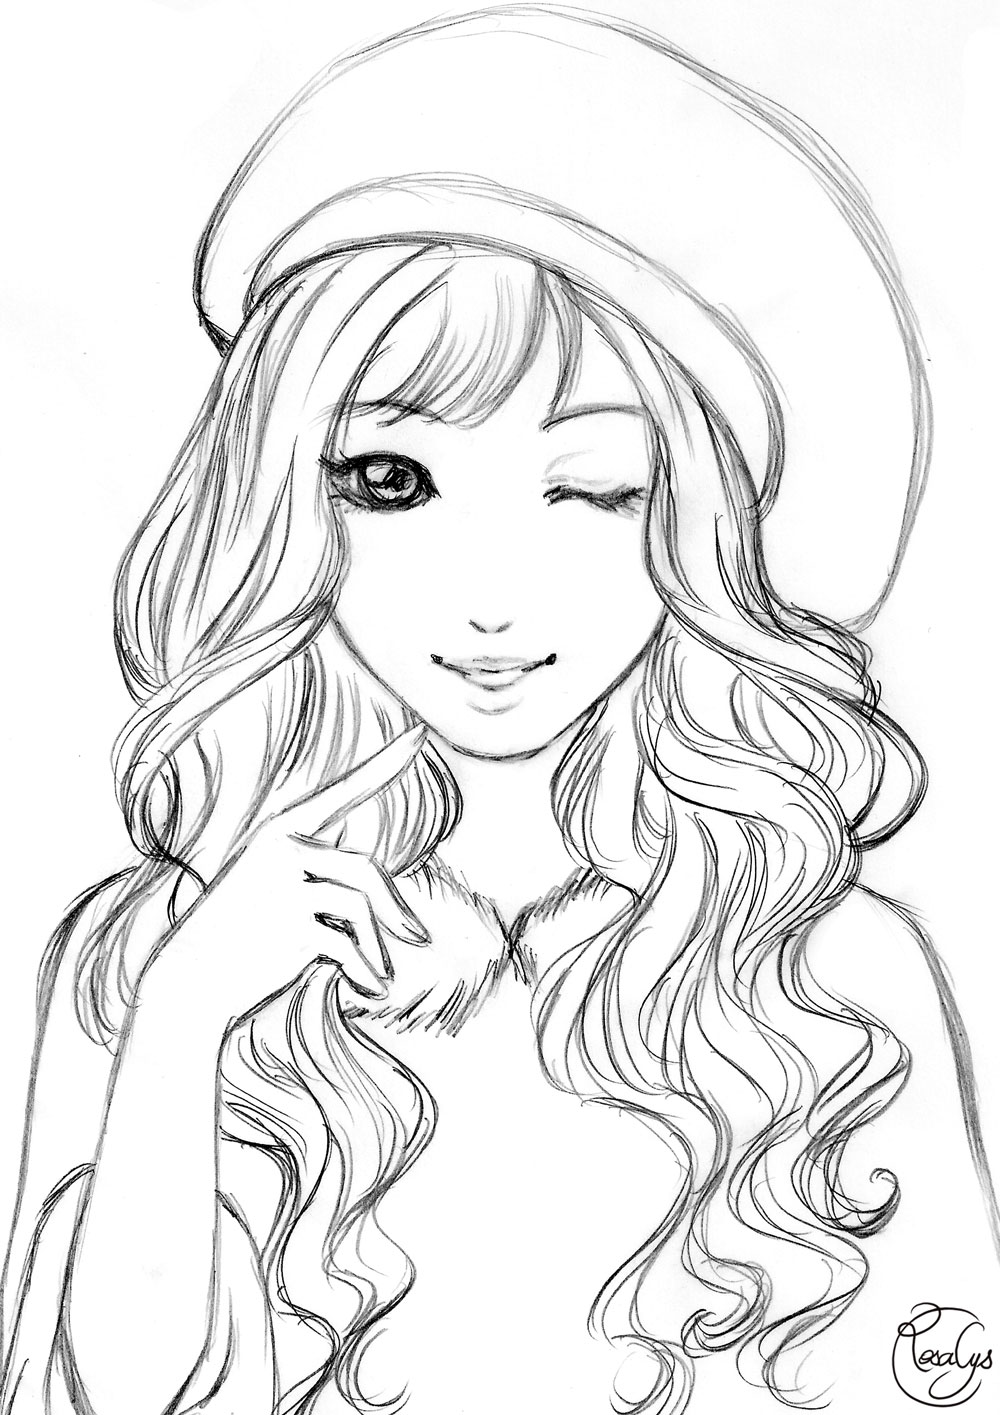 Linearts